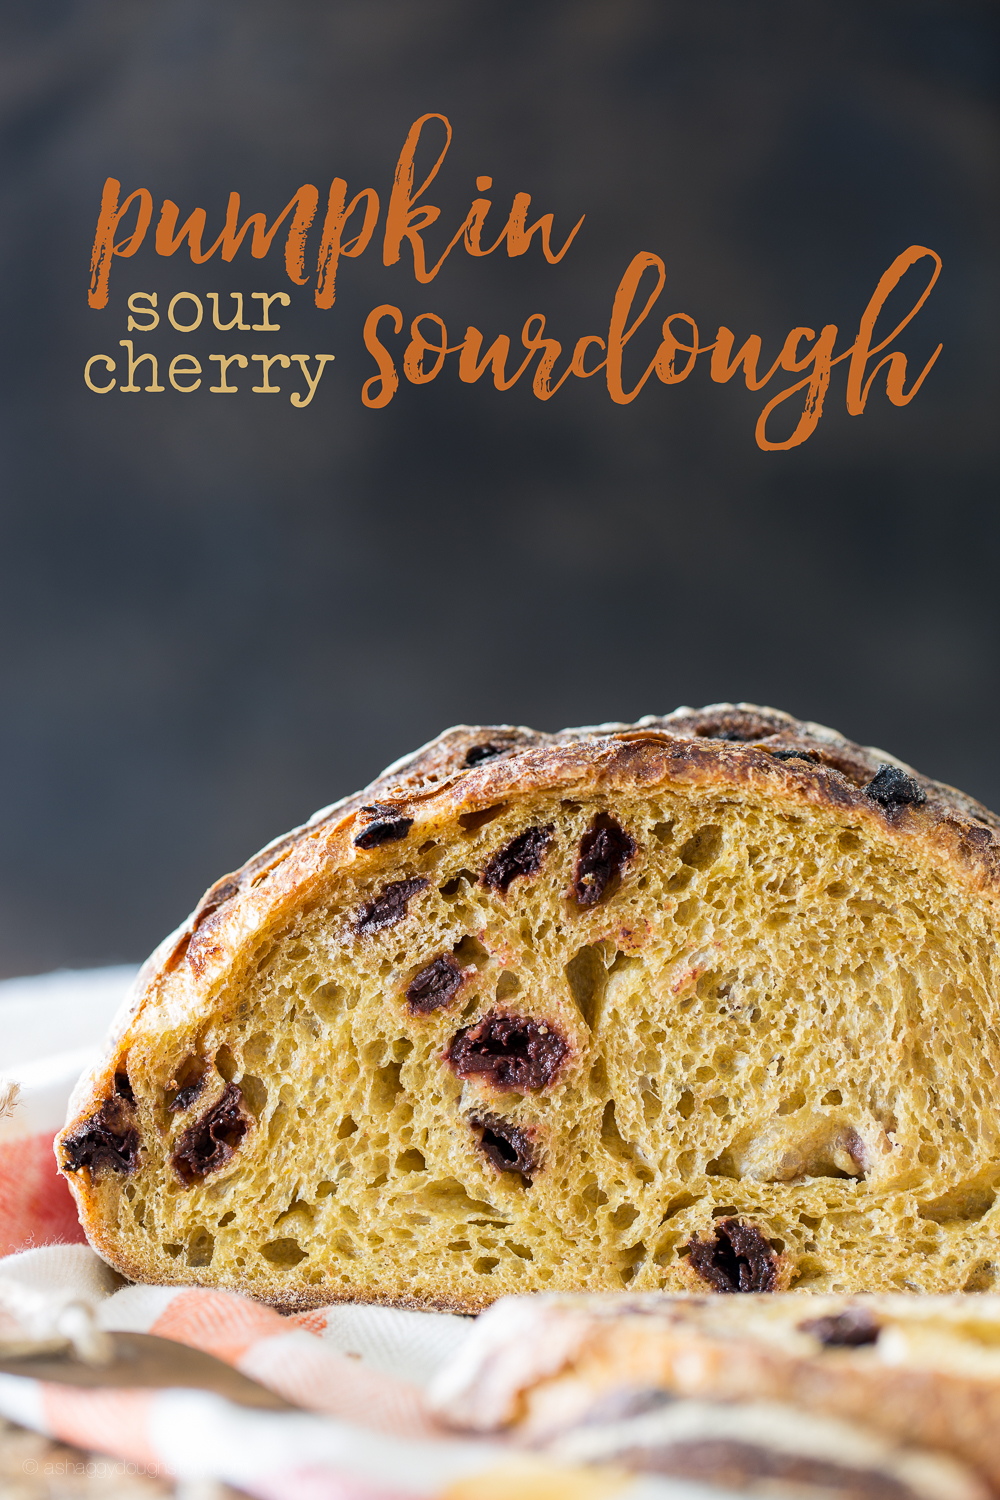 Pumpkin_Sour_Cherry_Sourdough_Bread-4.jpg